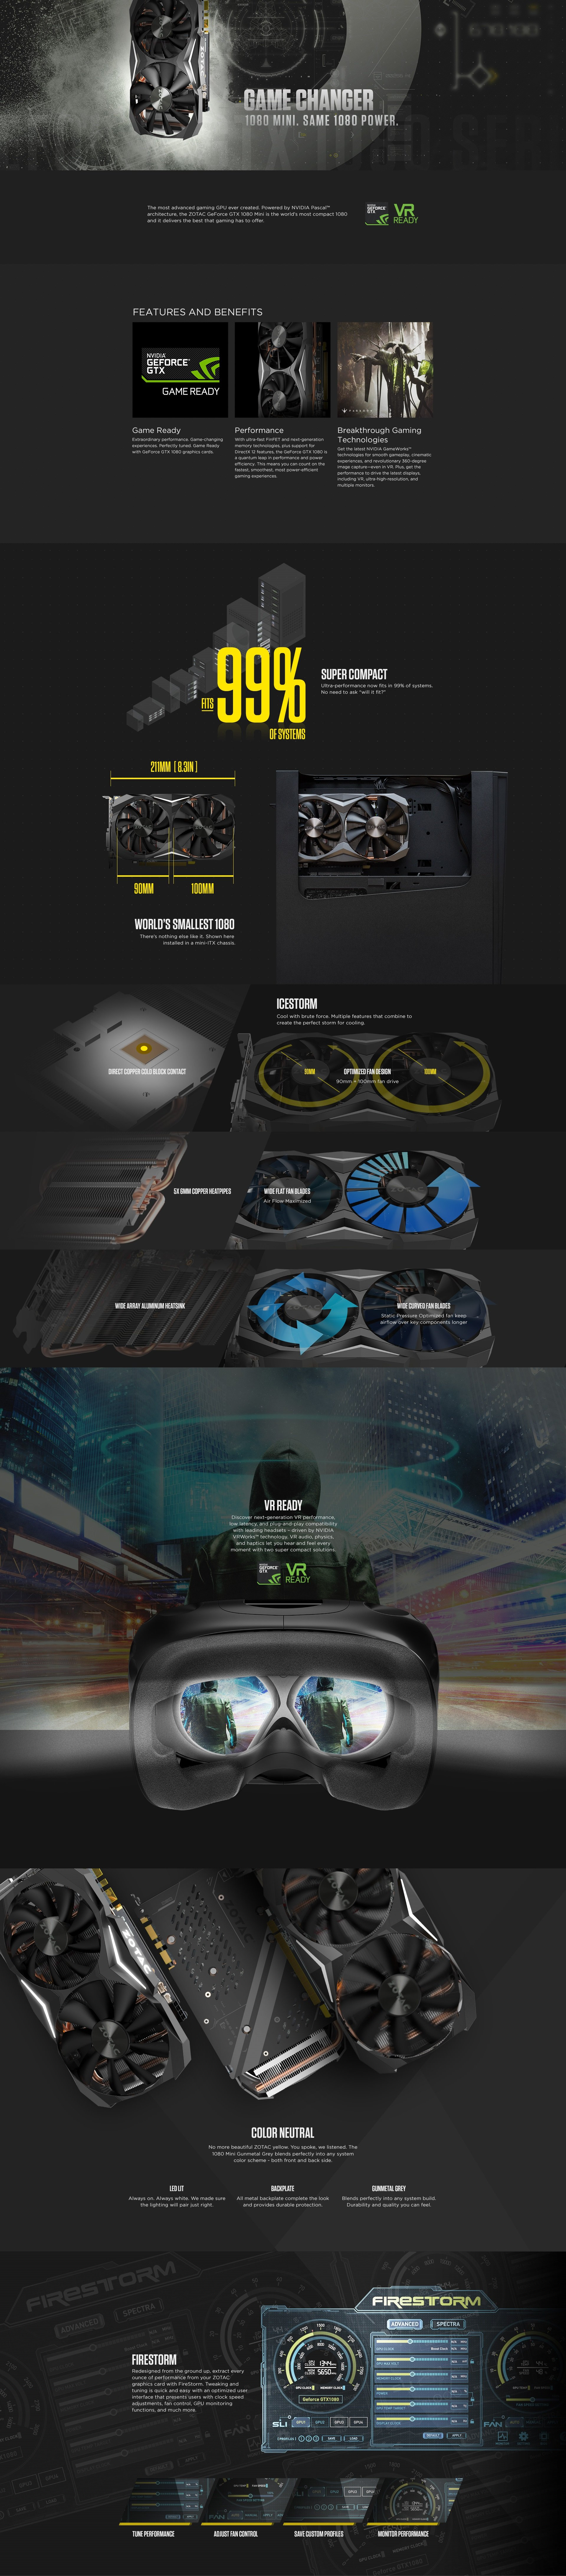 ZOTAC GeForce® GTX 1080 Mini | ZOTAC